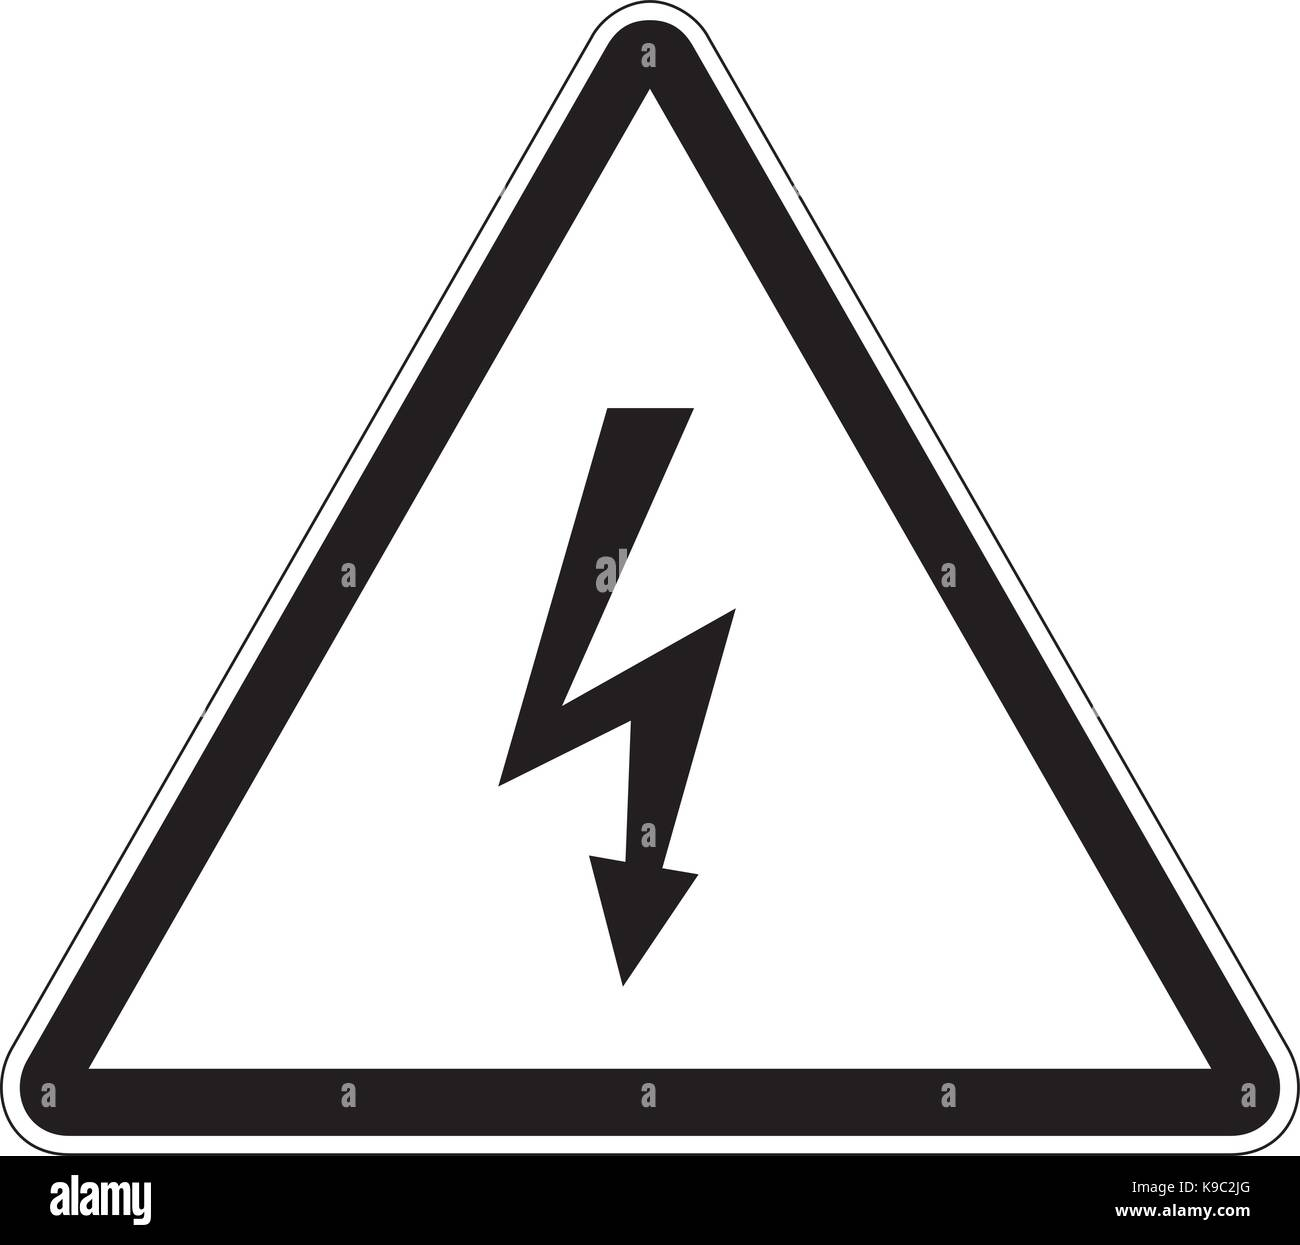 High voltage sign stock photos high voltage sign stock images alamy high voltage warning danger sign stock image buycottarizona Images